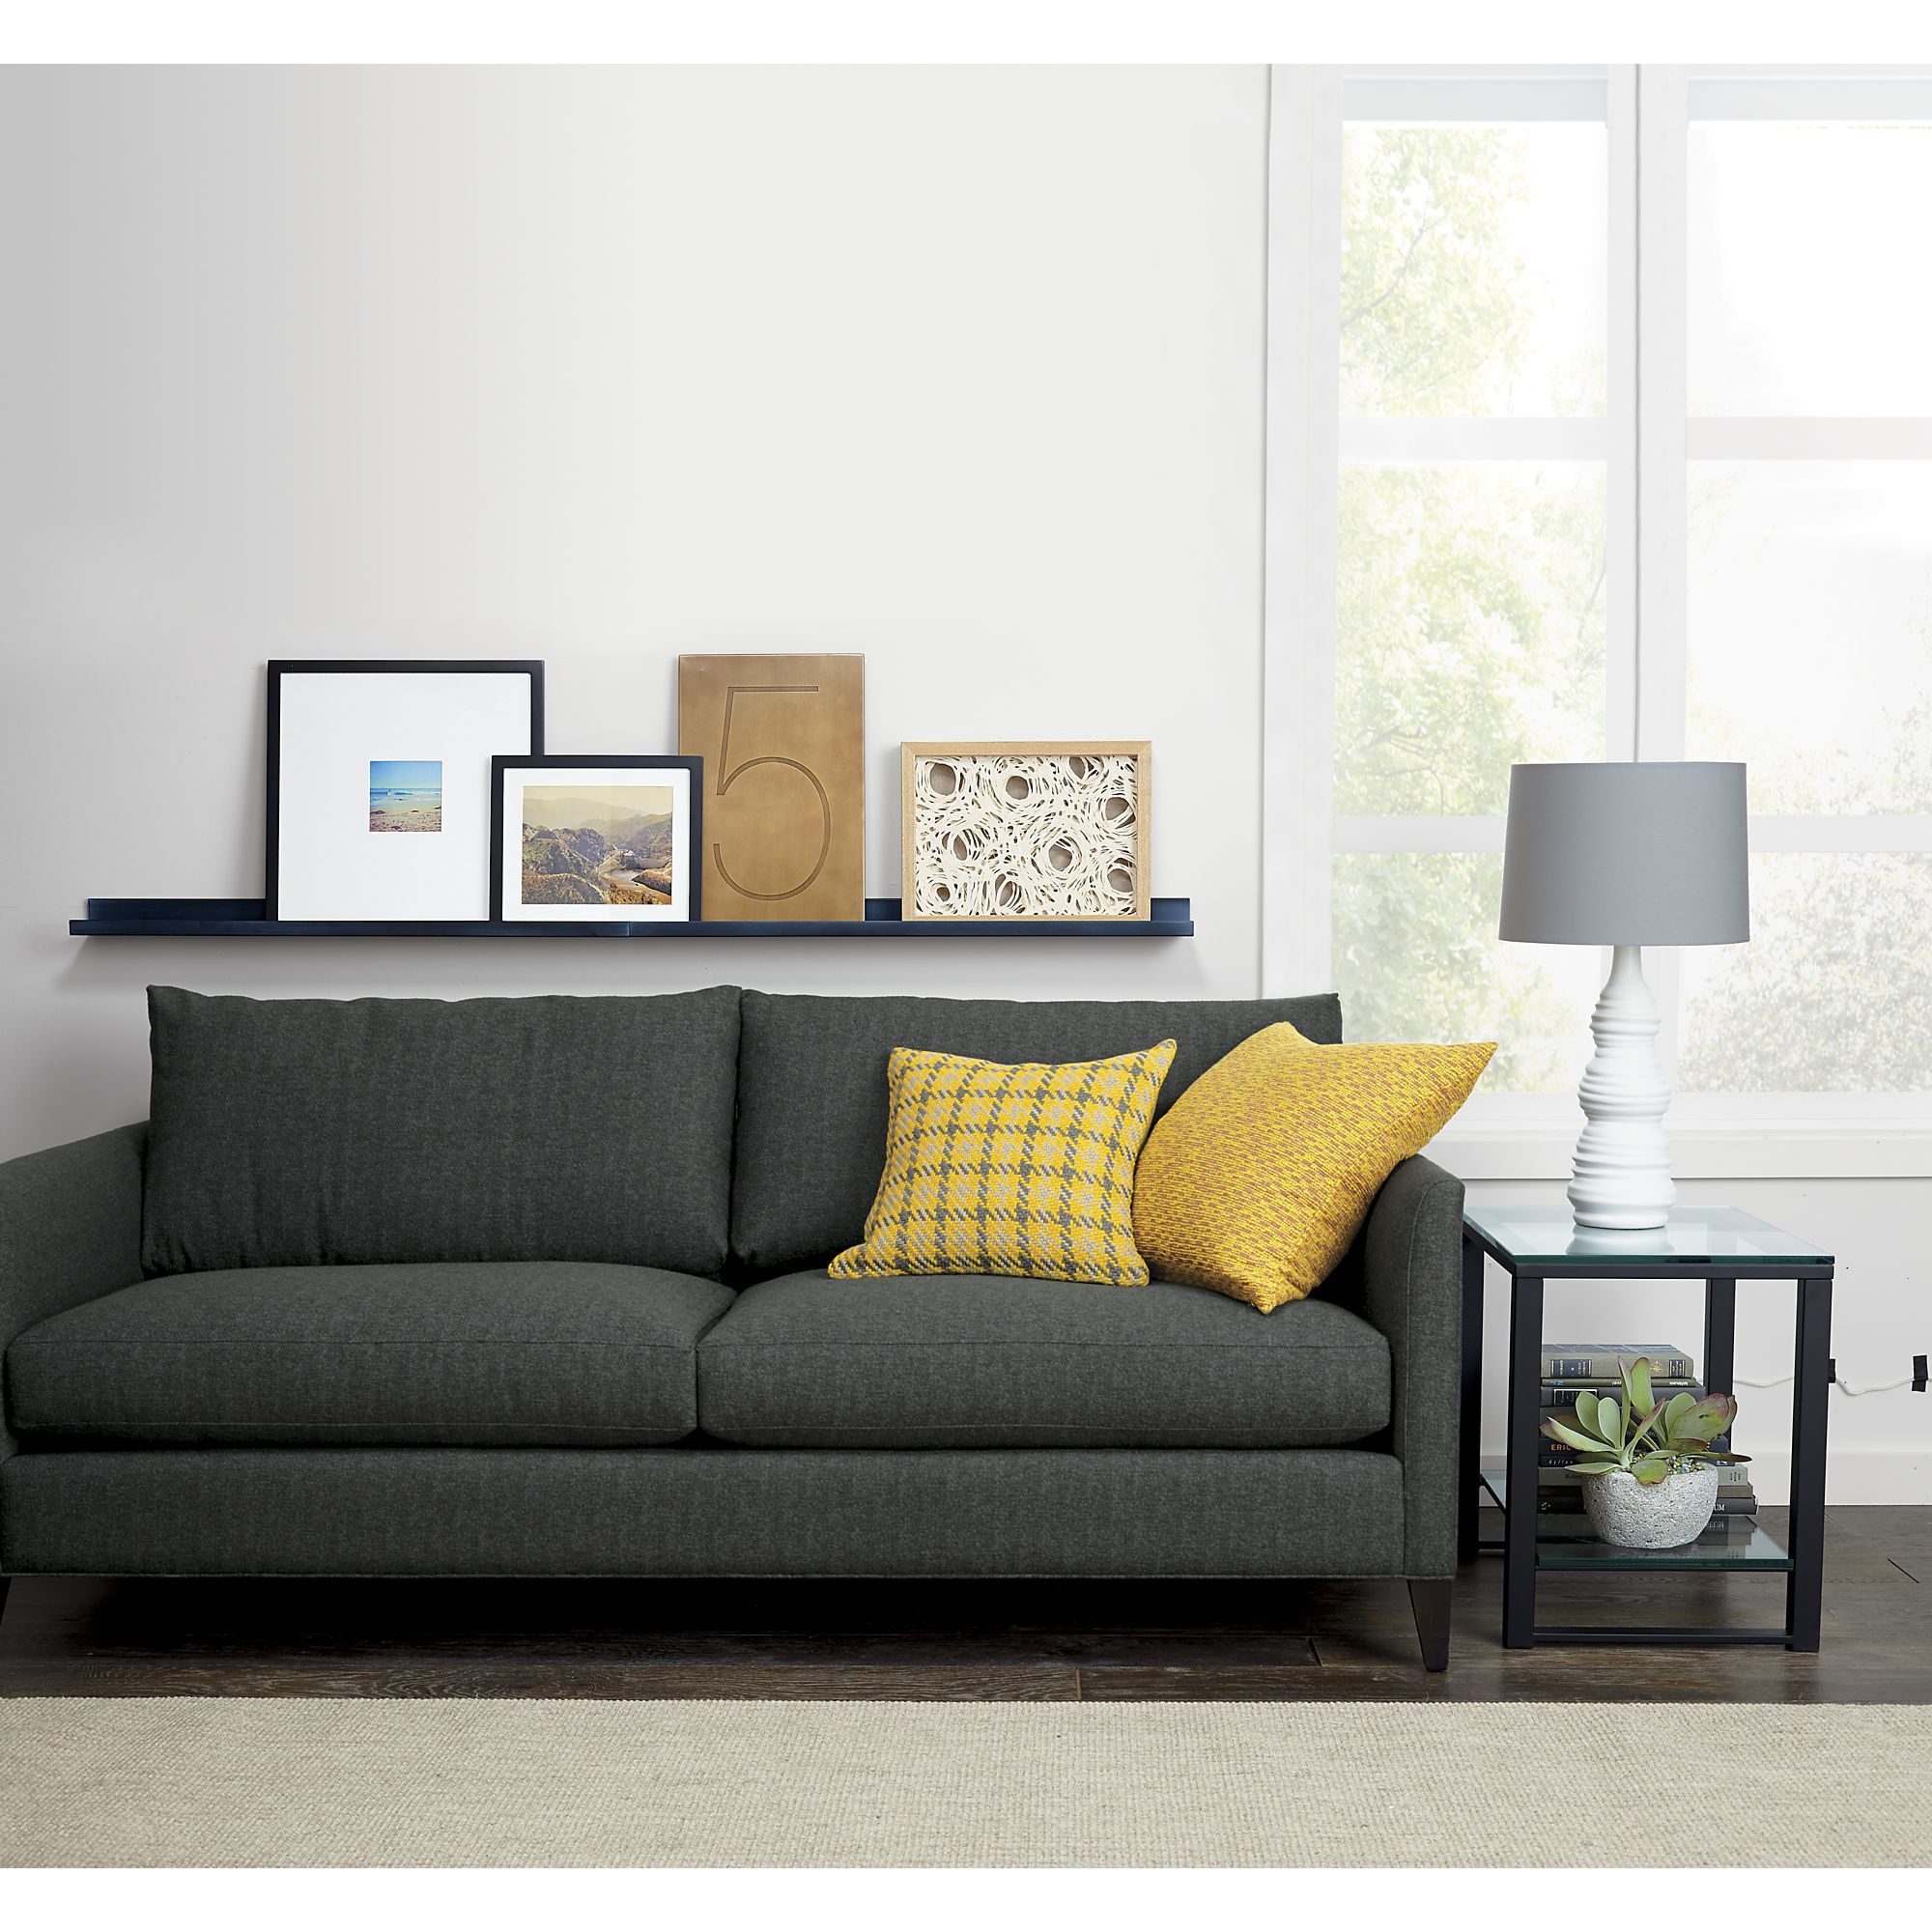 Klyne II Sofa in Sofas | Crate and Barrel | Living Room | Pinterest